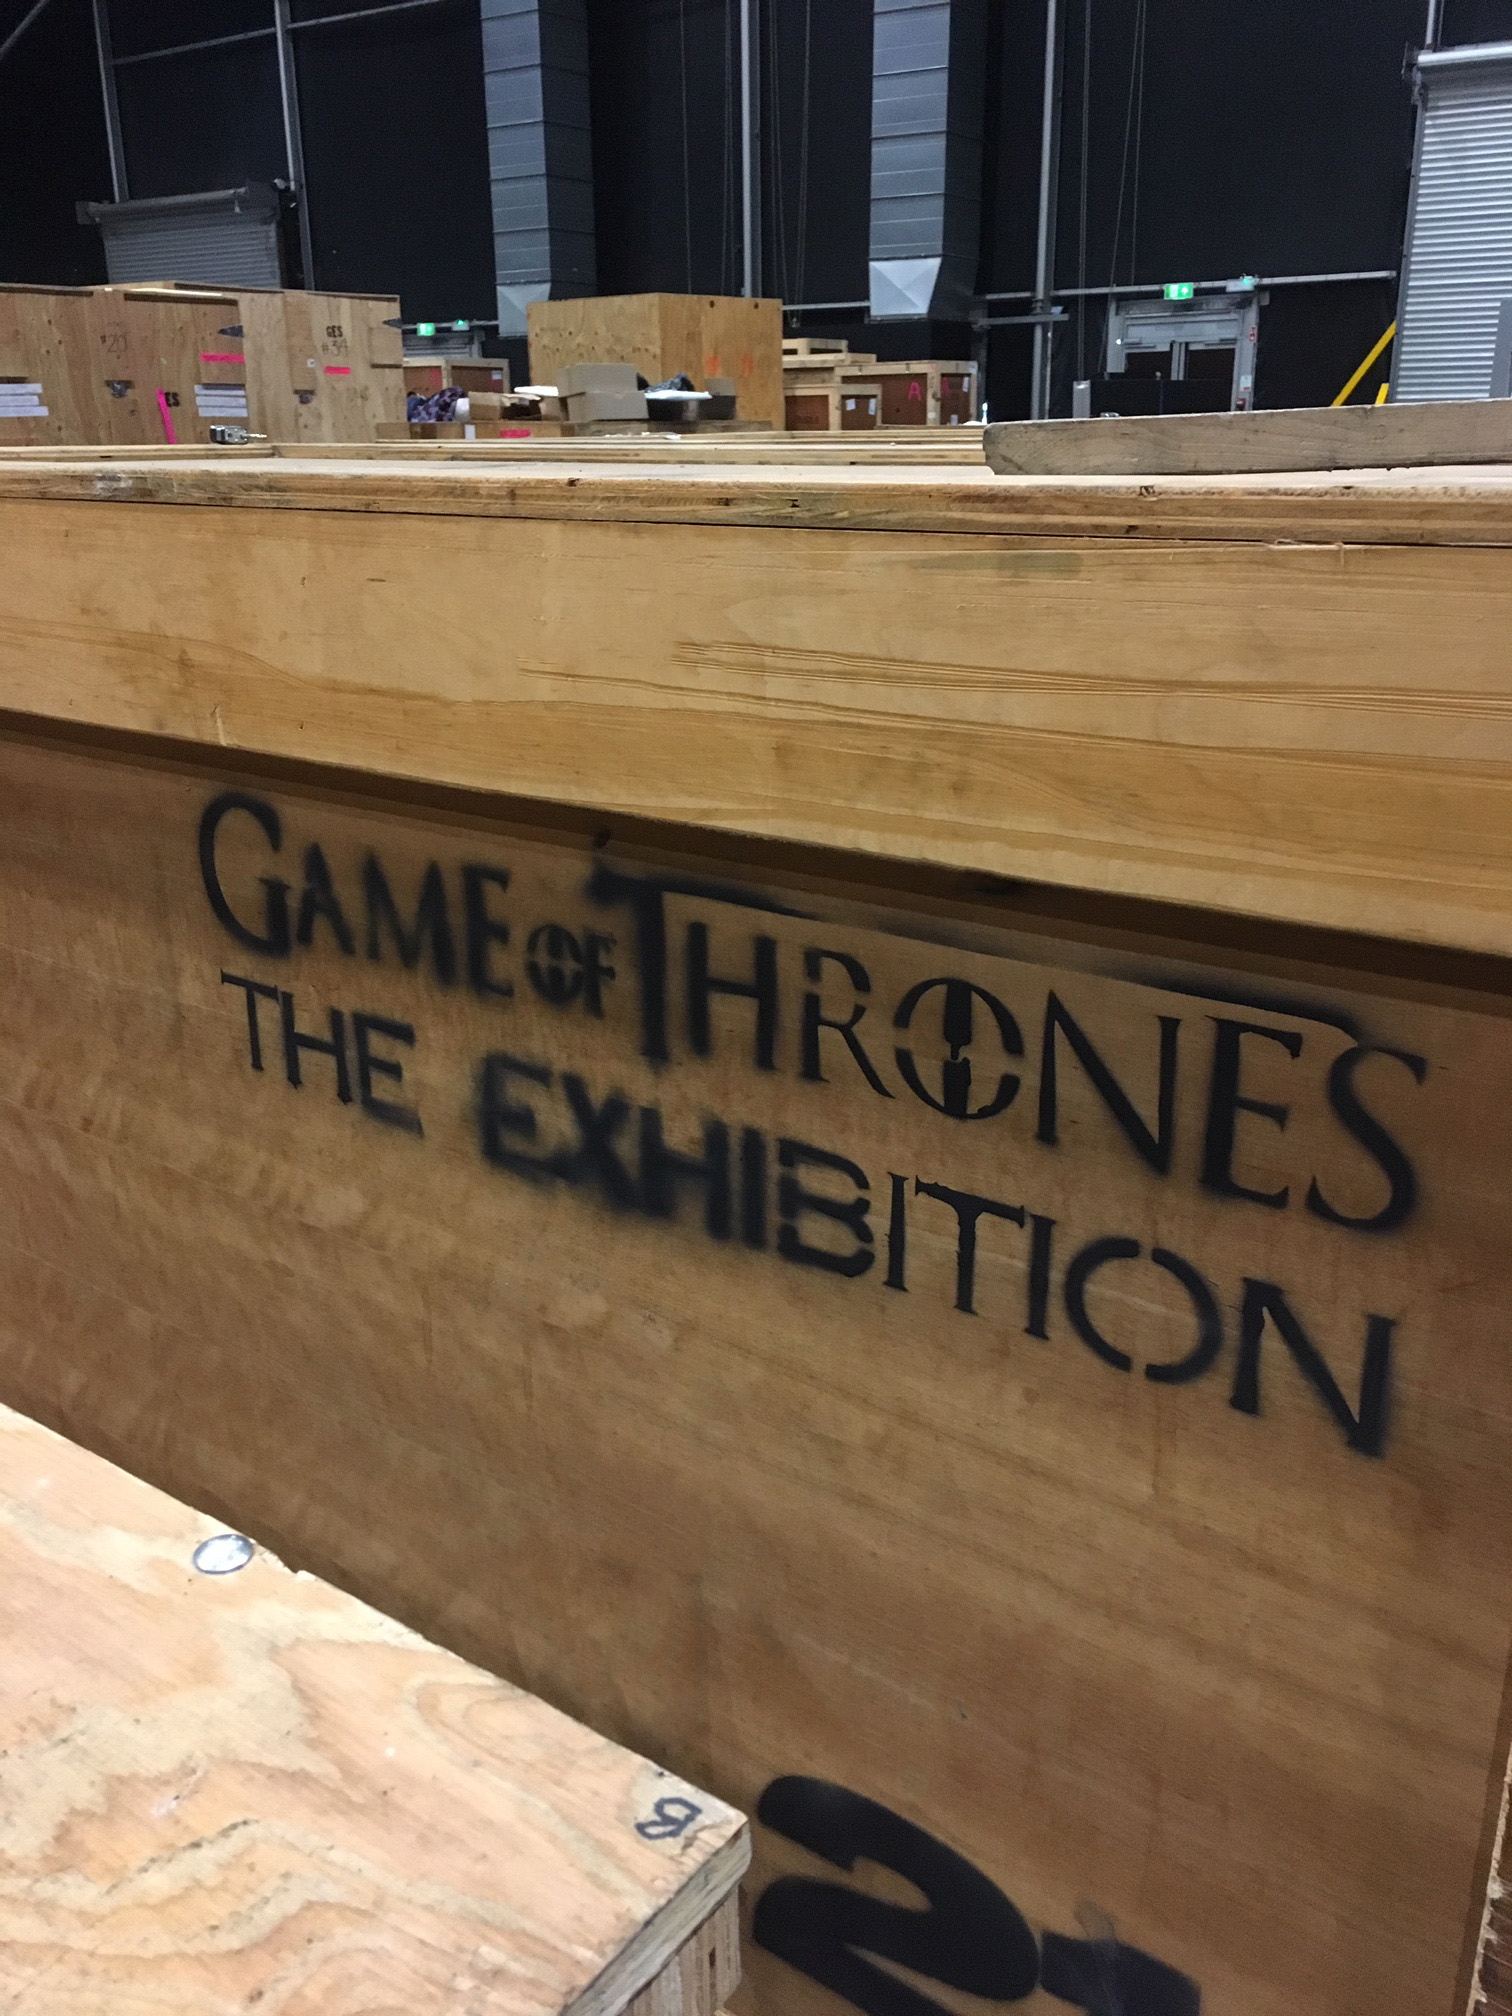 Game of Thrones: The Exhibition headline image